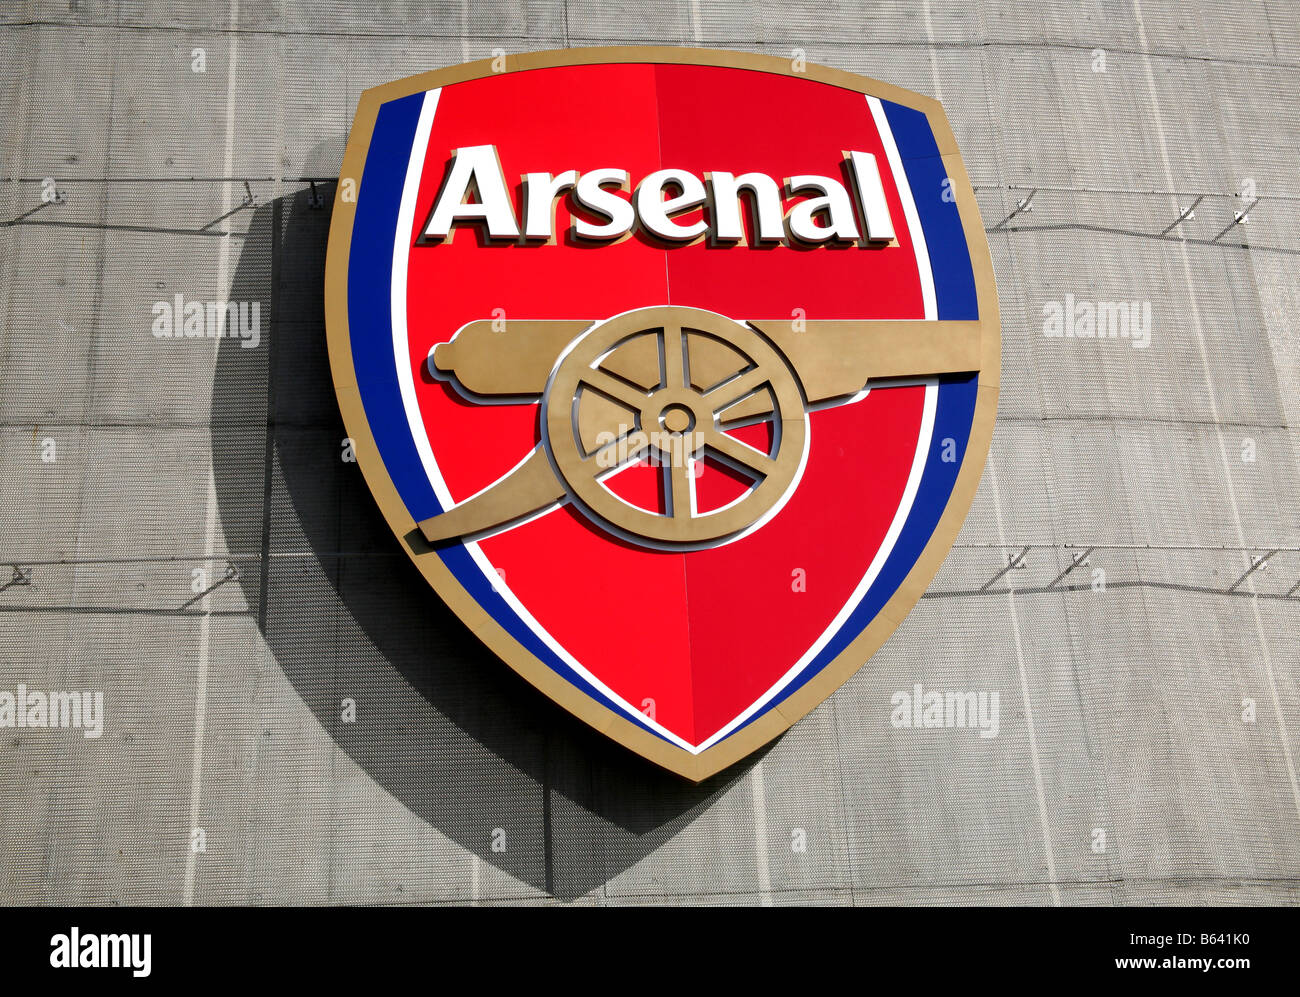 Arsenal Logo High Resolution Stock Photography And Images Alamy